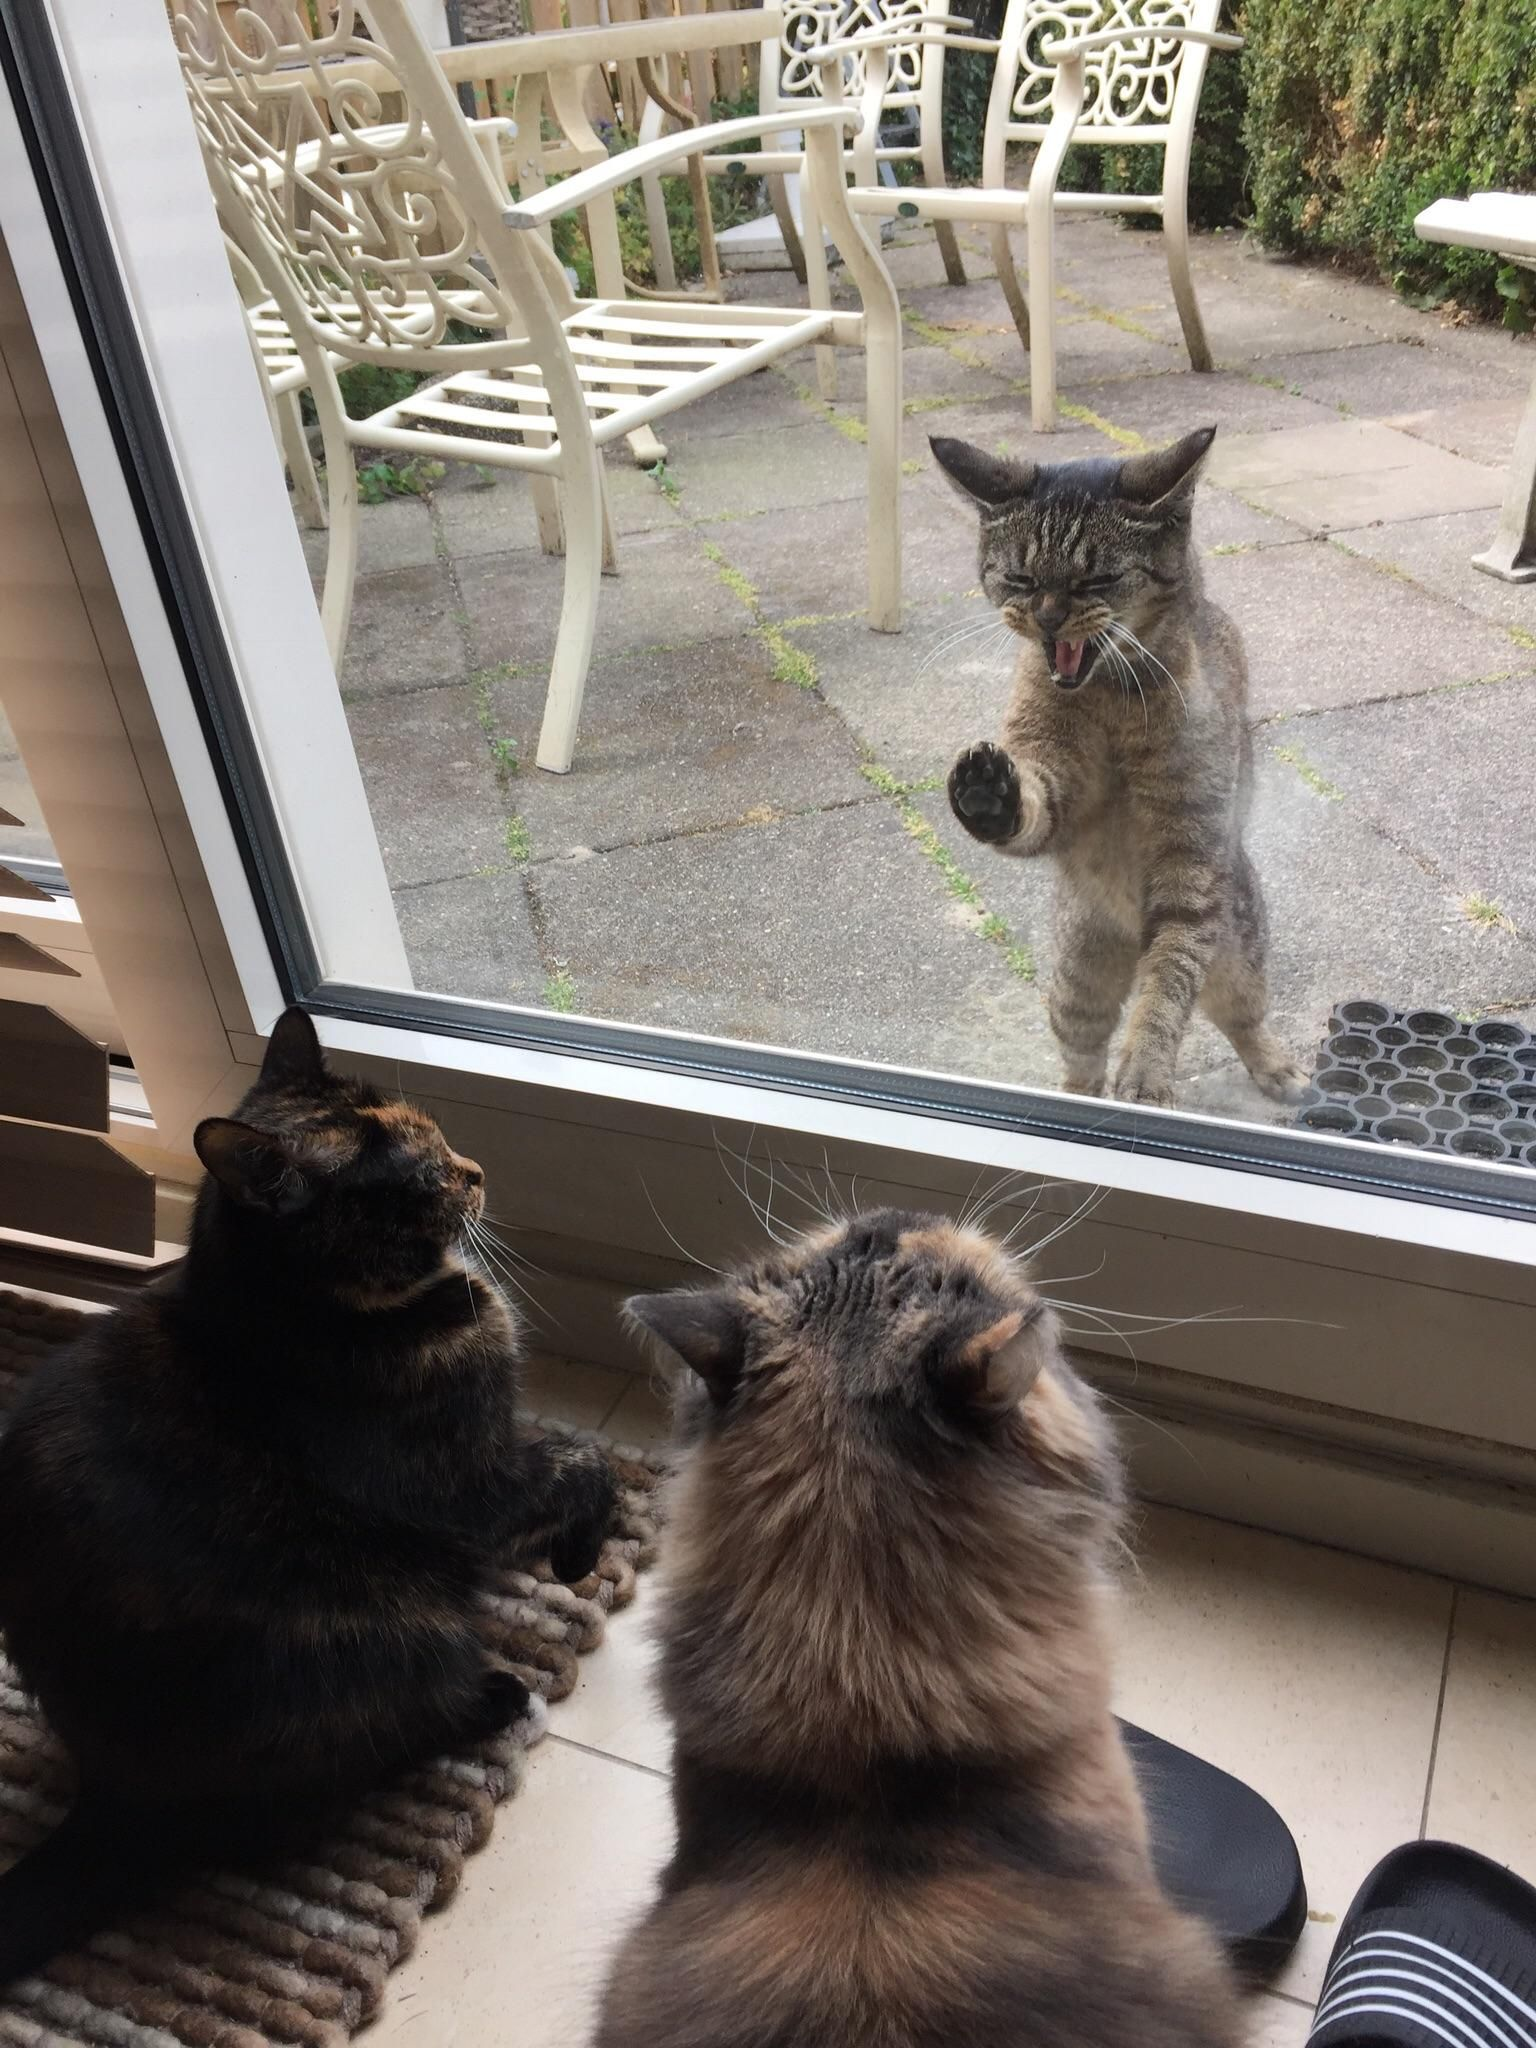 We Had A Visitor Hello There Bright People Are You Catlover Or Have You Any Pretty Cats I Think You Love A Kitty F Cat Having Kittens Baby Cats Cats